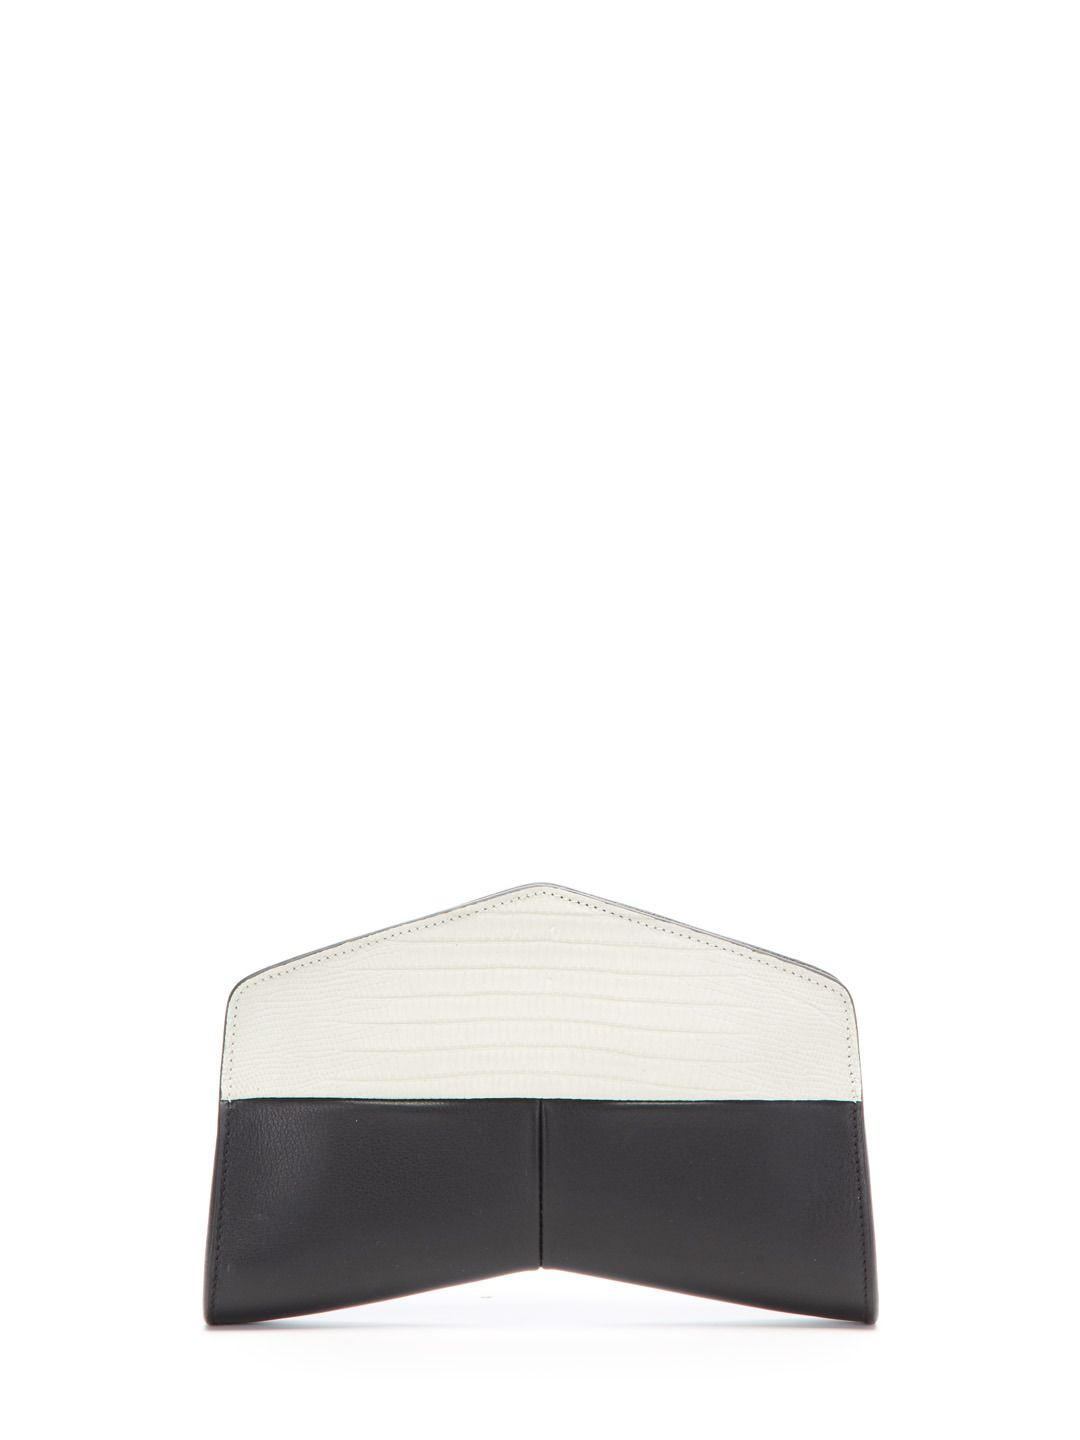 Colorblock Snake Clutch  by Narciso Rodriguez